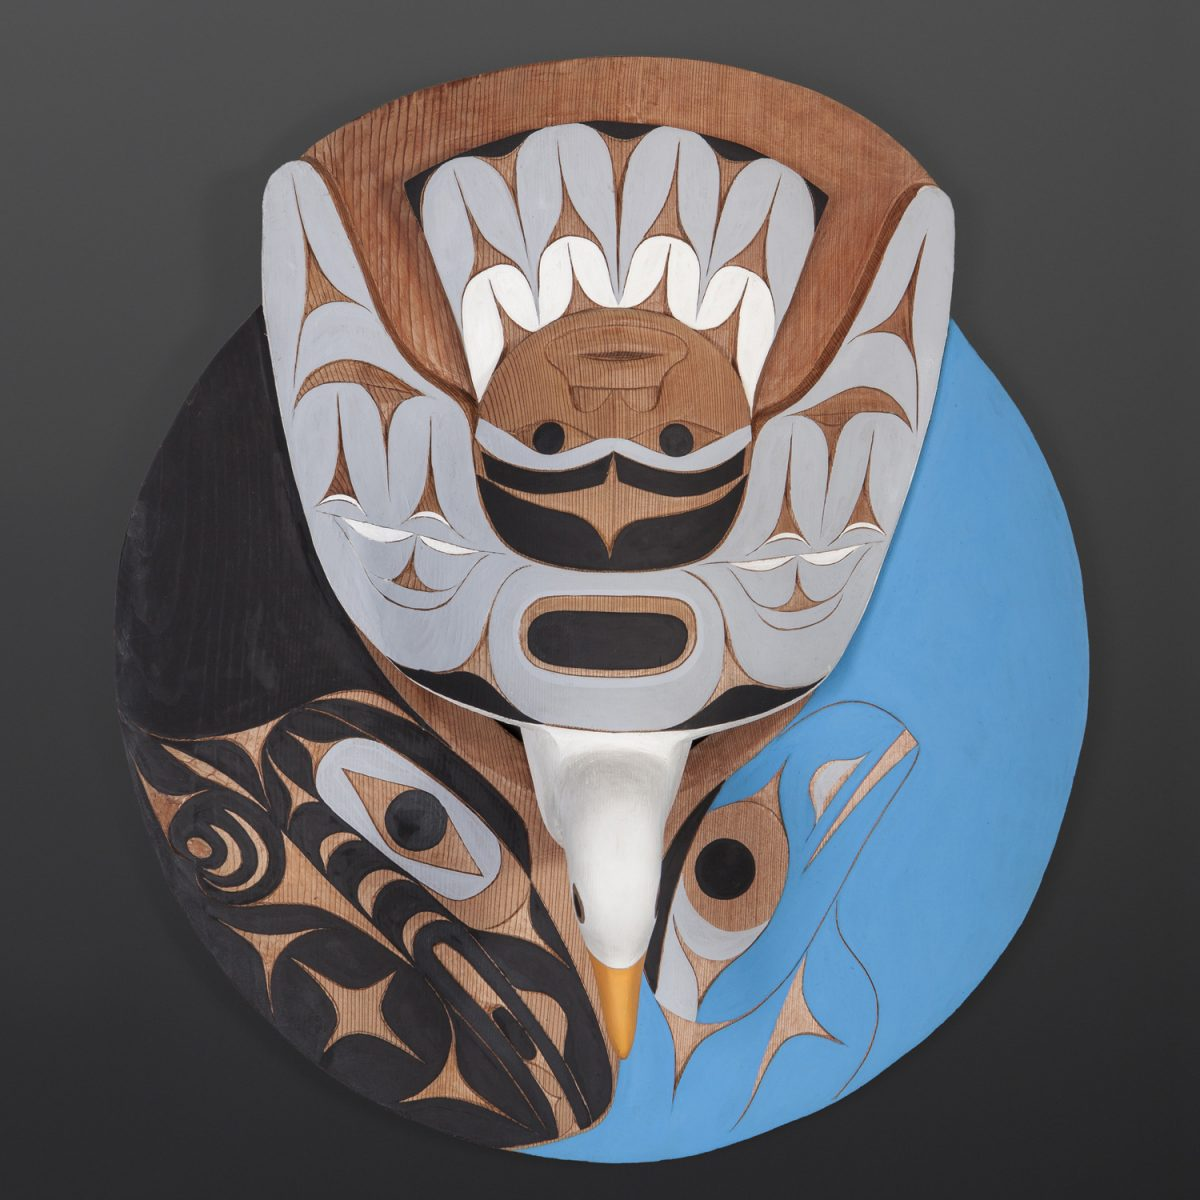 carving Raven and Seagull Releasing Daylight, by Nuu-chah-nulth artist Tim Paul